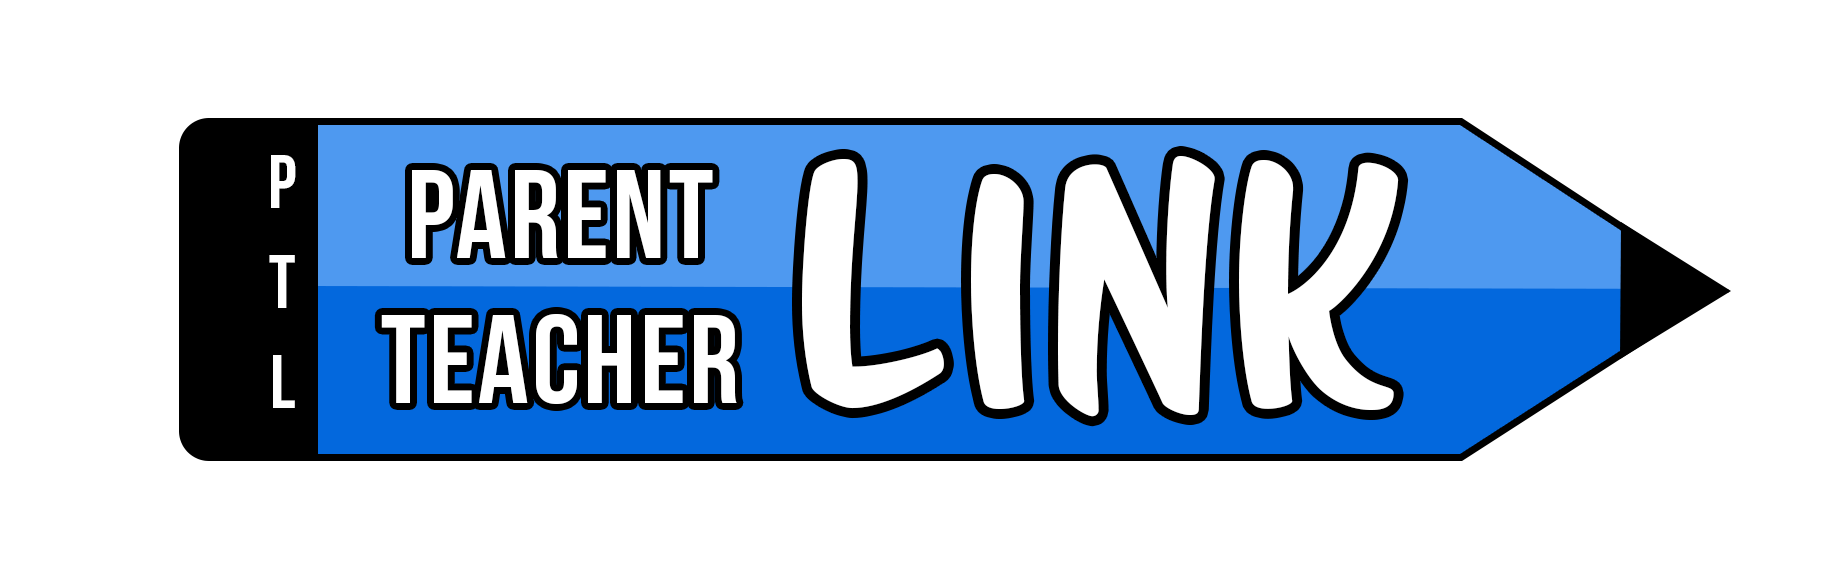 Parent Teacher Link logo